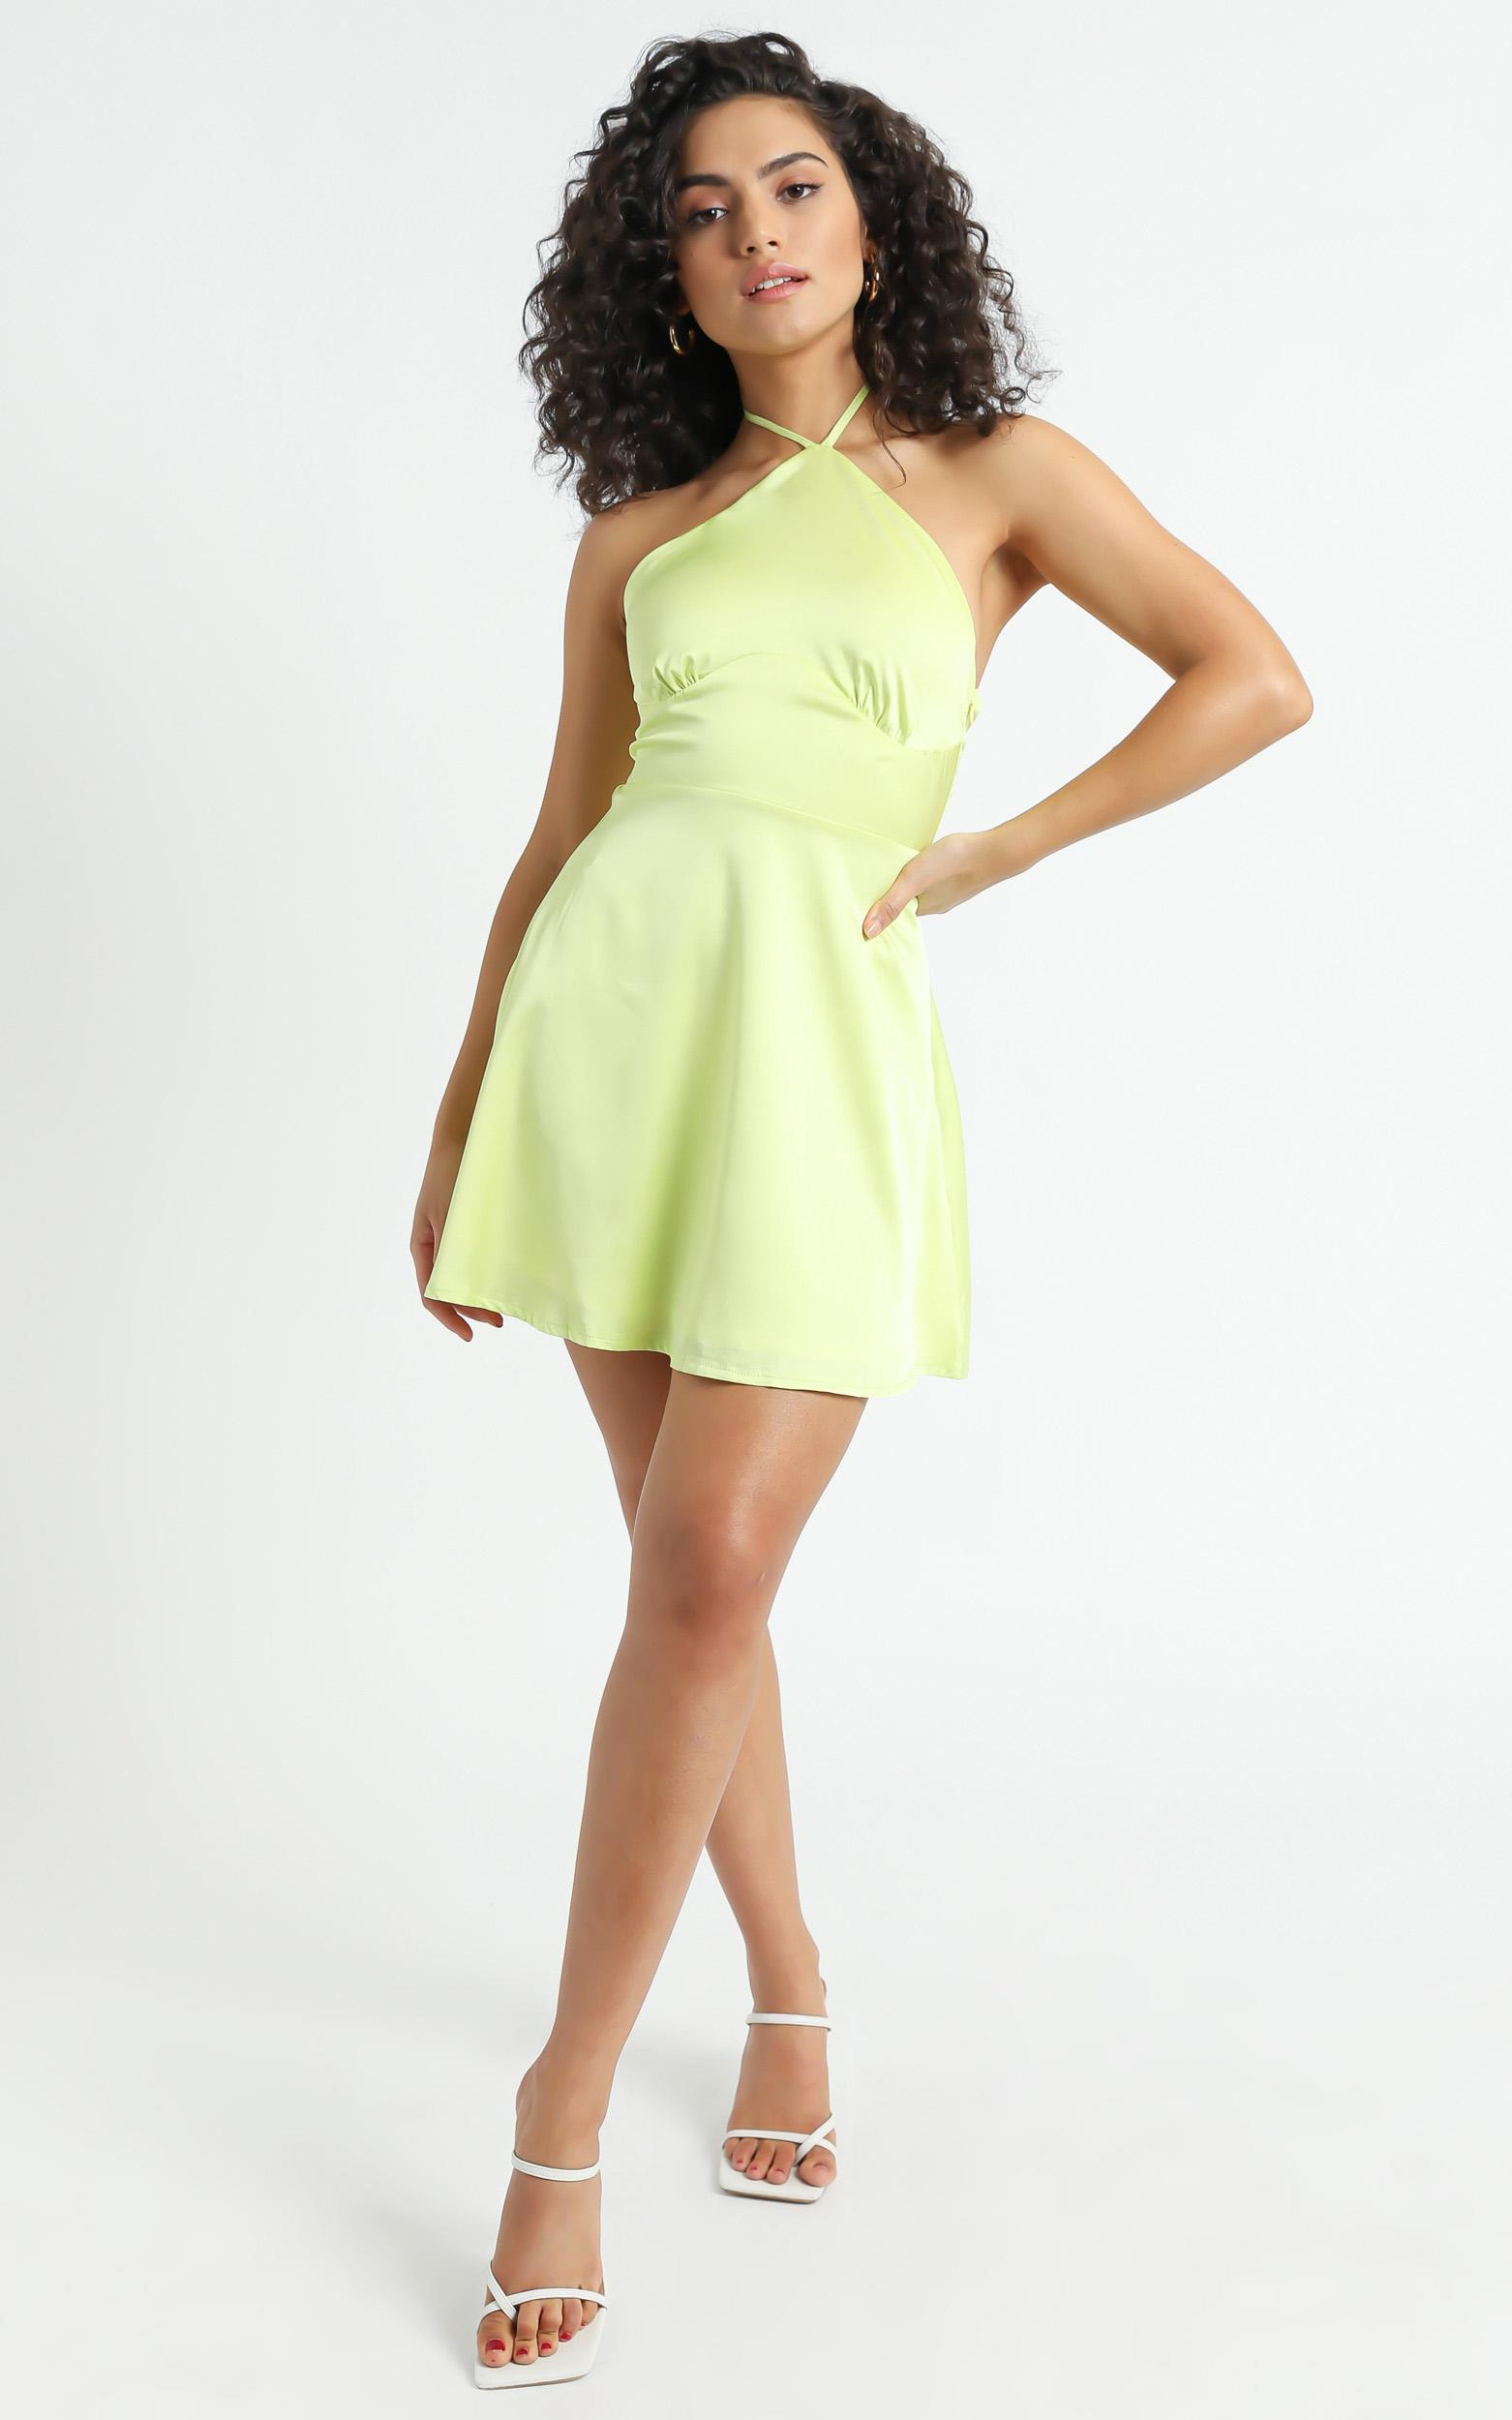 Nerolia Dress in Lime Green - 06, GRN3, hi-res image number null